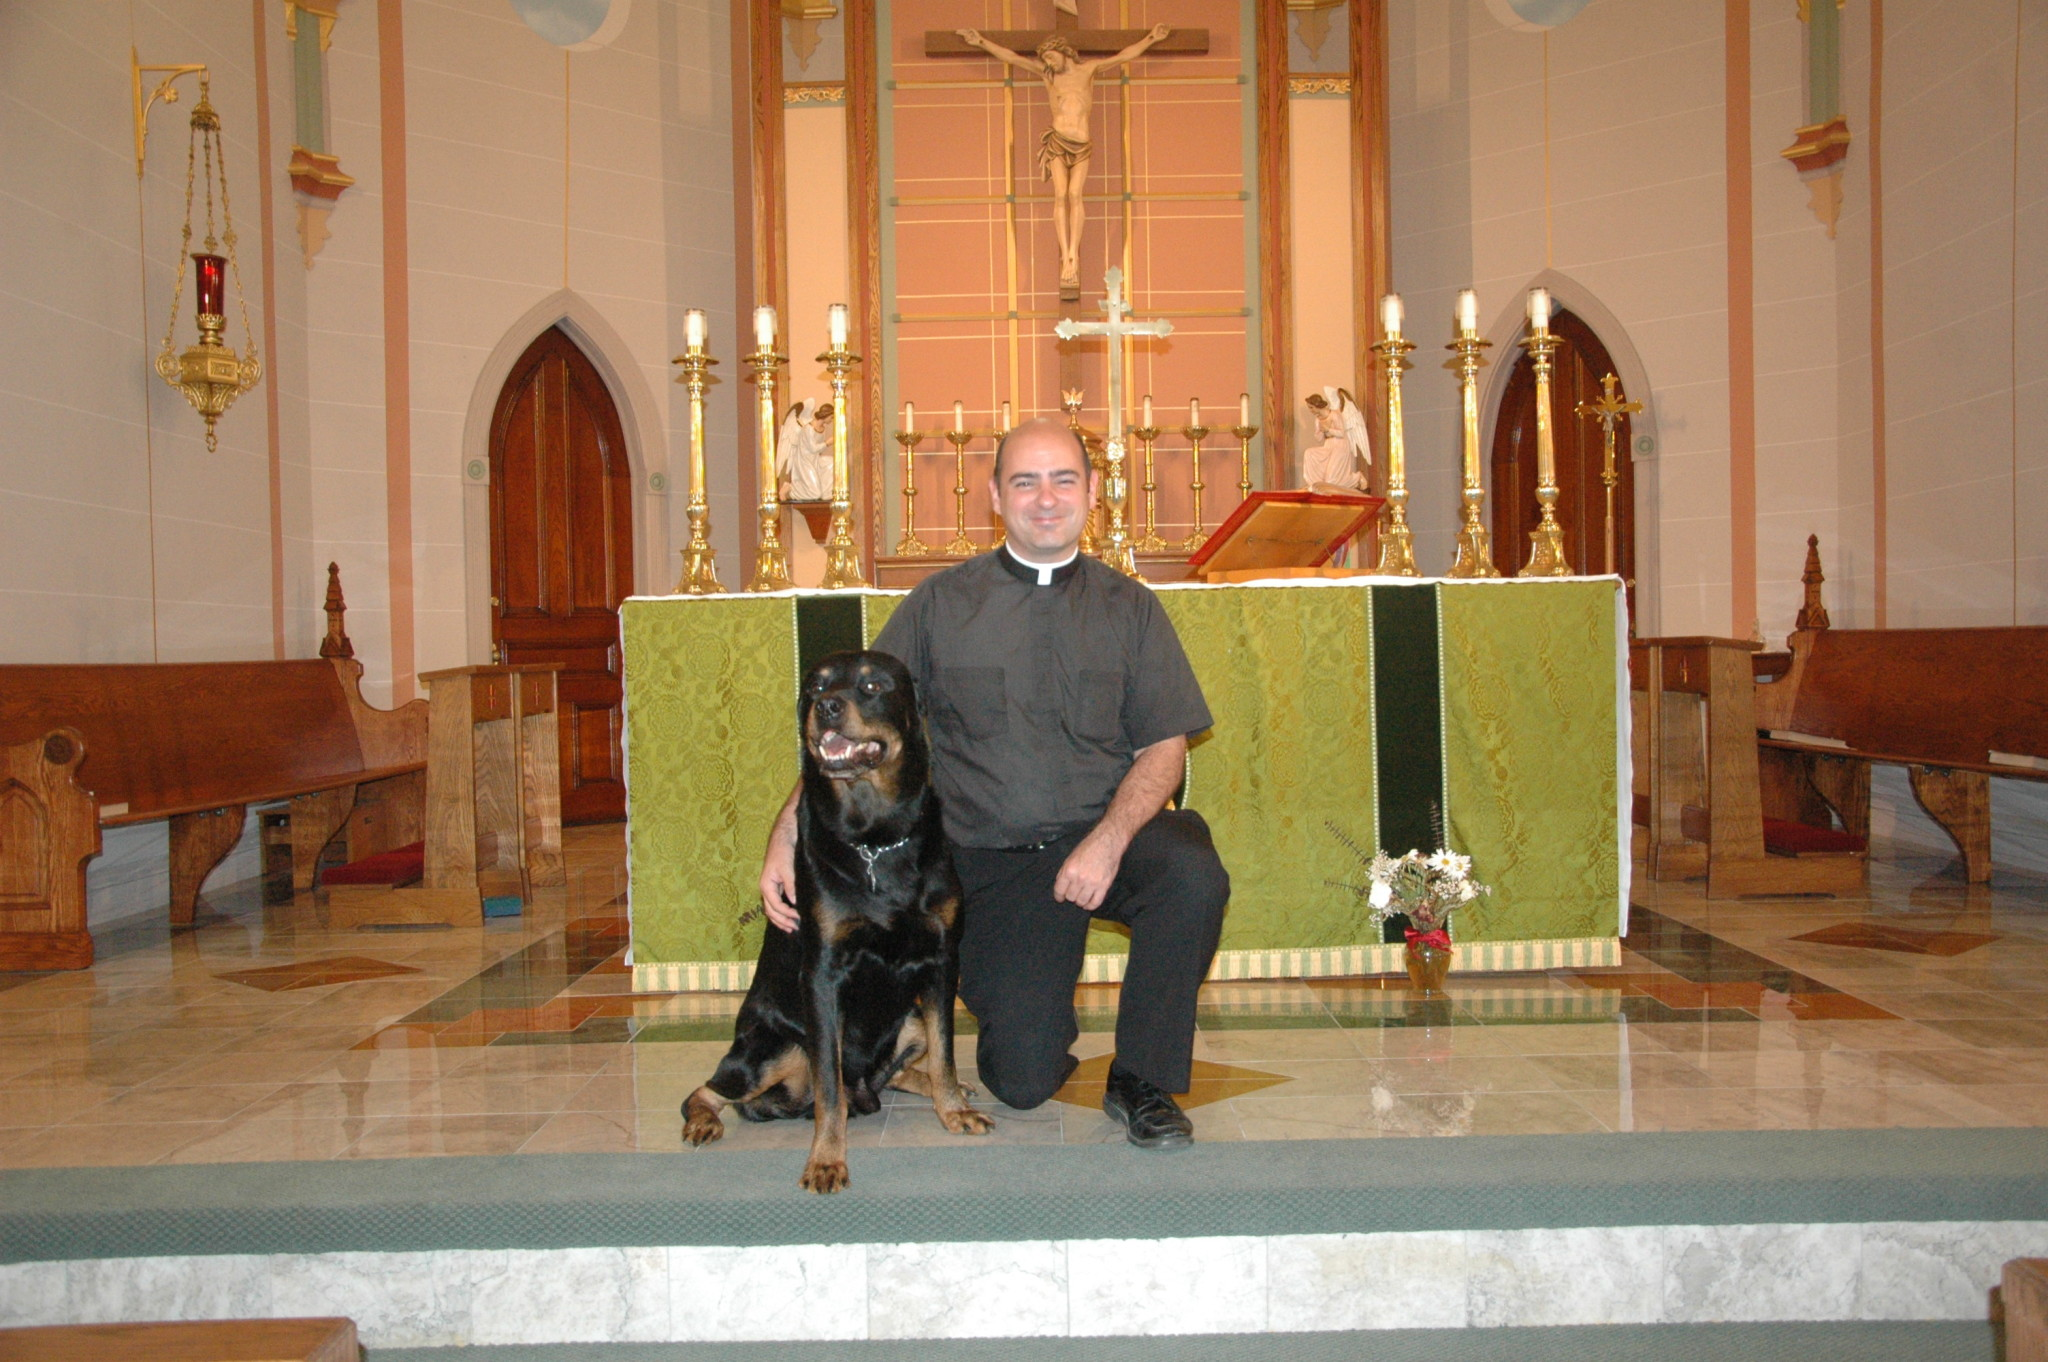 Priest leaving after 5 years: Father Flannery leaving for Greenville